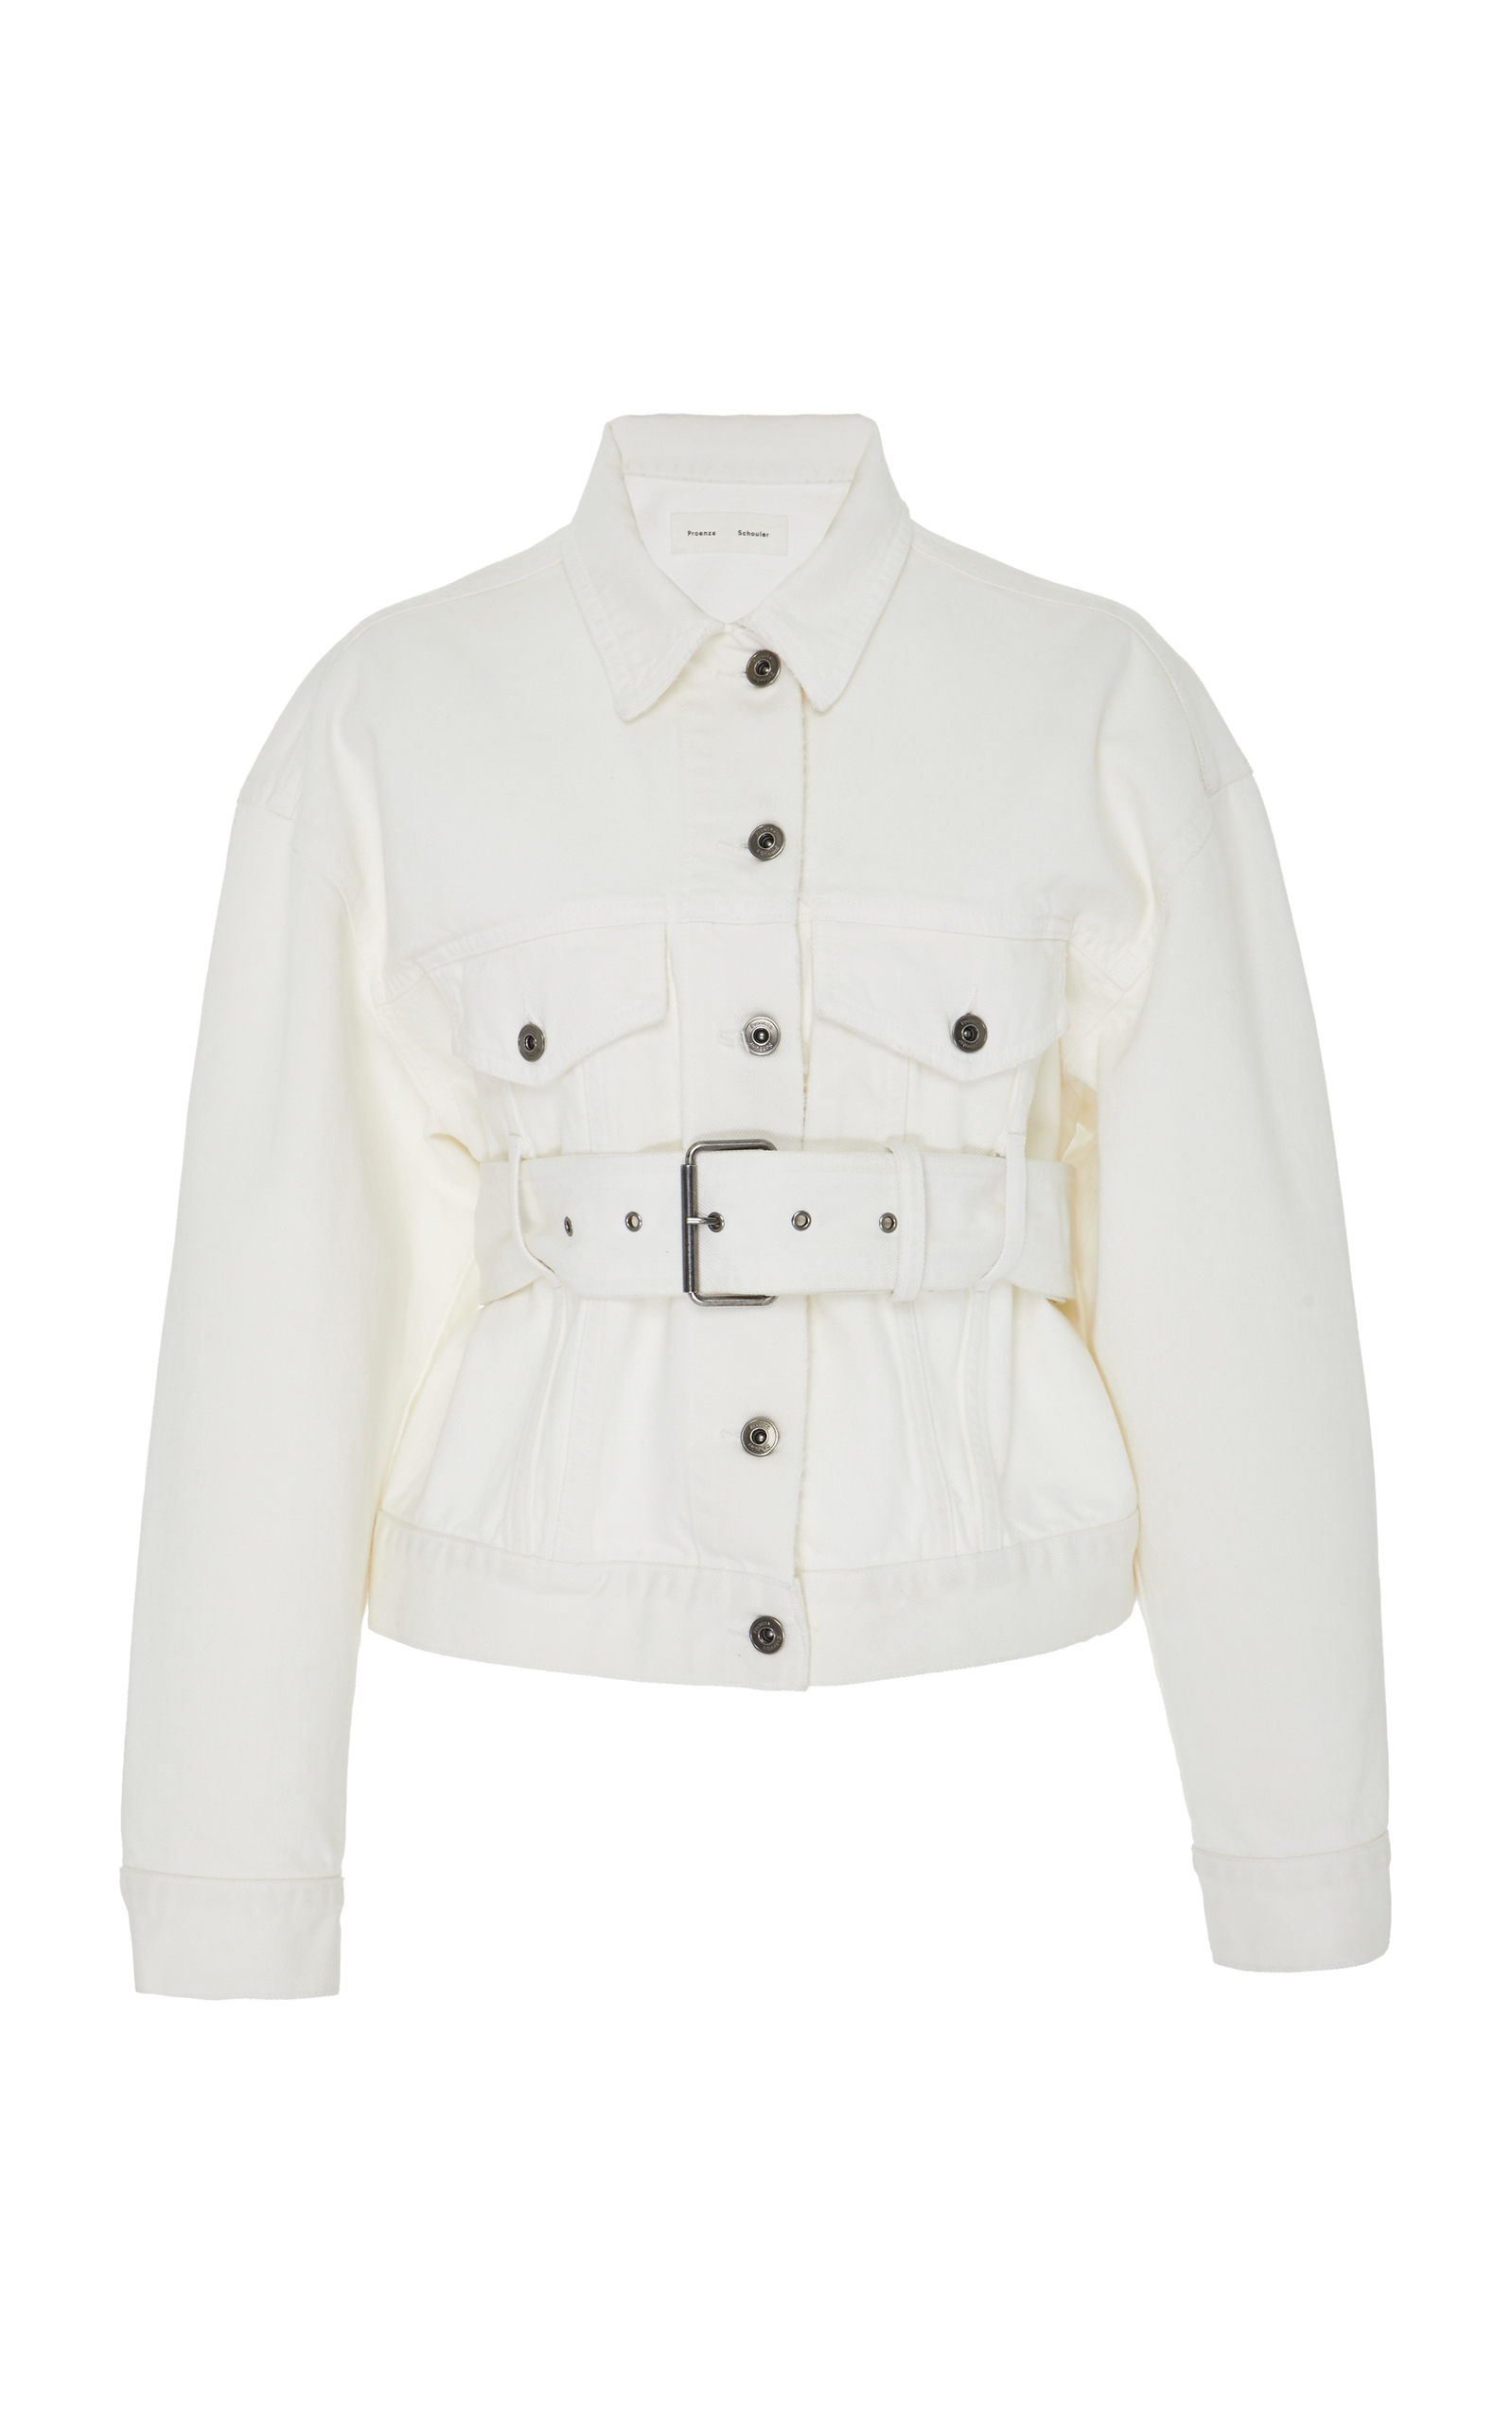 Pswl Belted Button-Down Denim Jackets in White